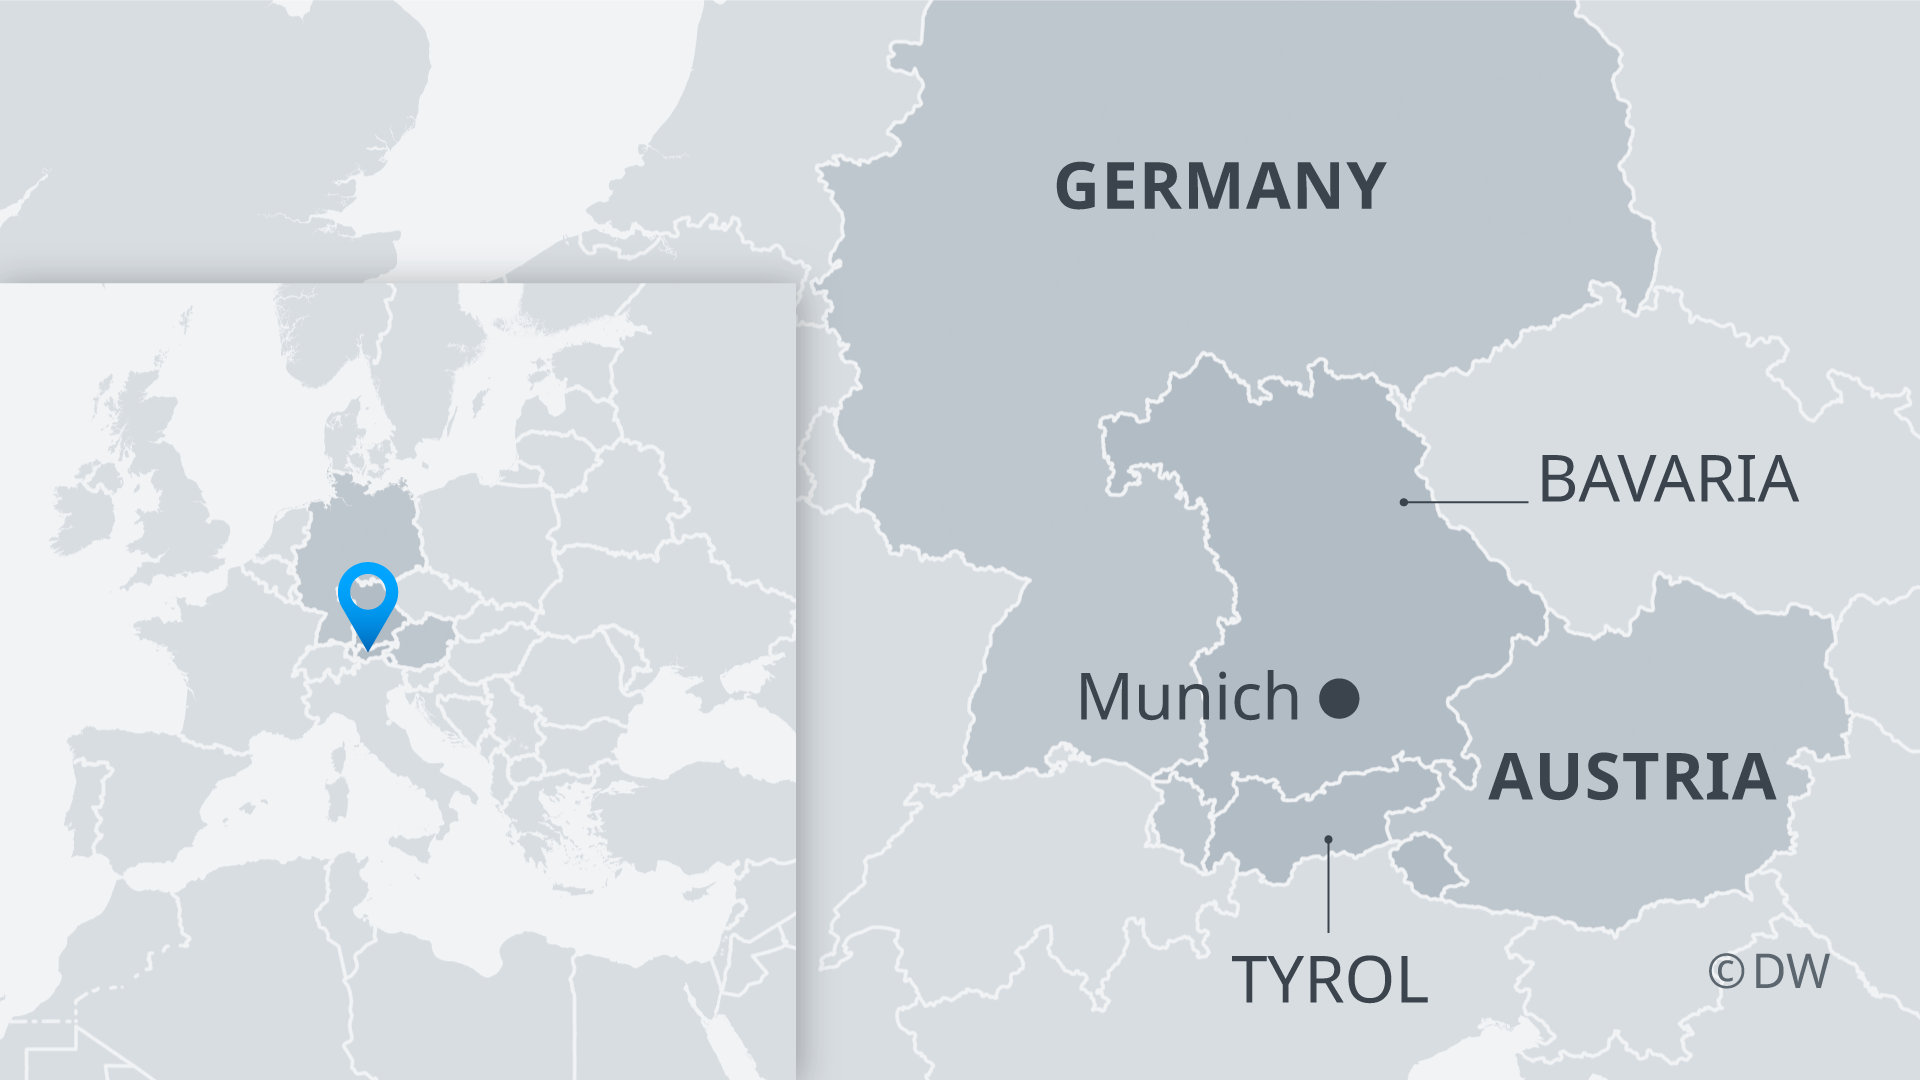 Austria closes country roads to German travelers | News | DW ...